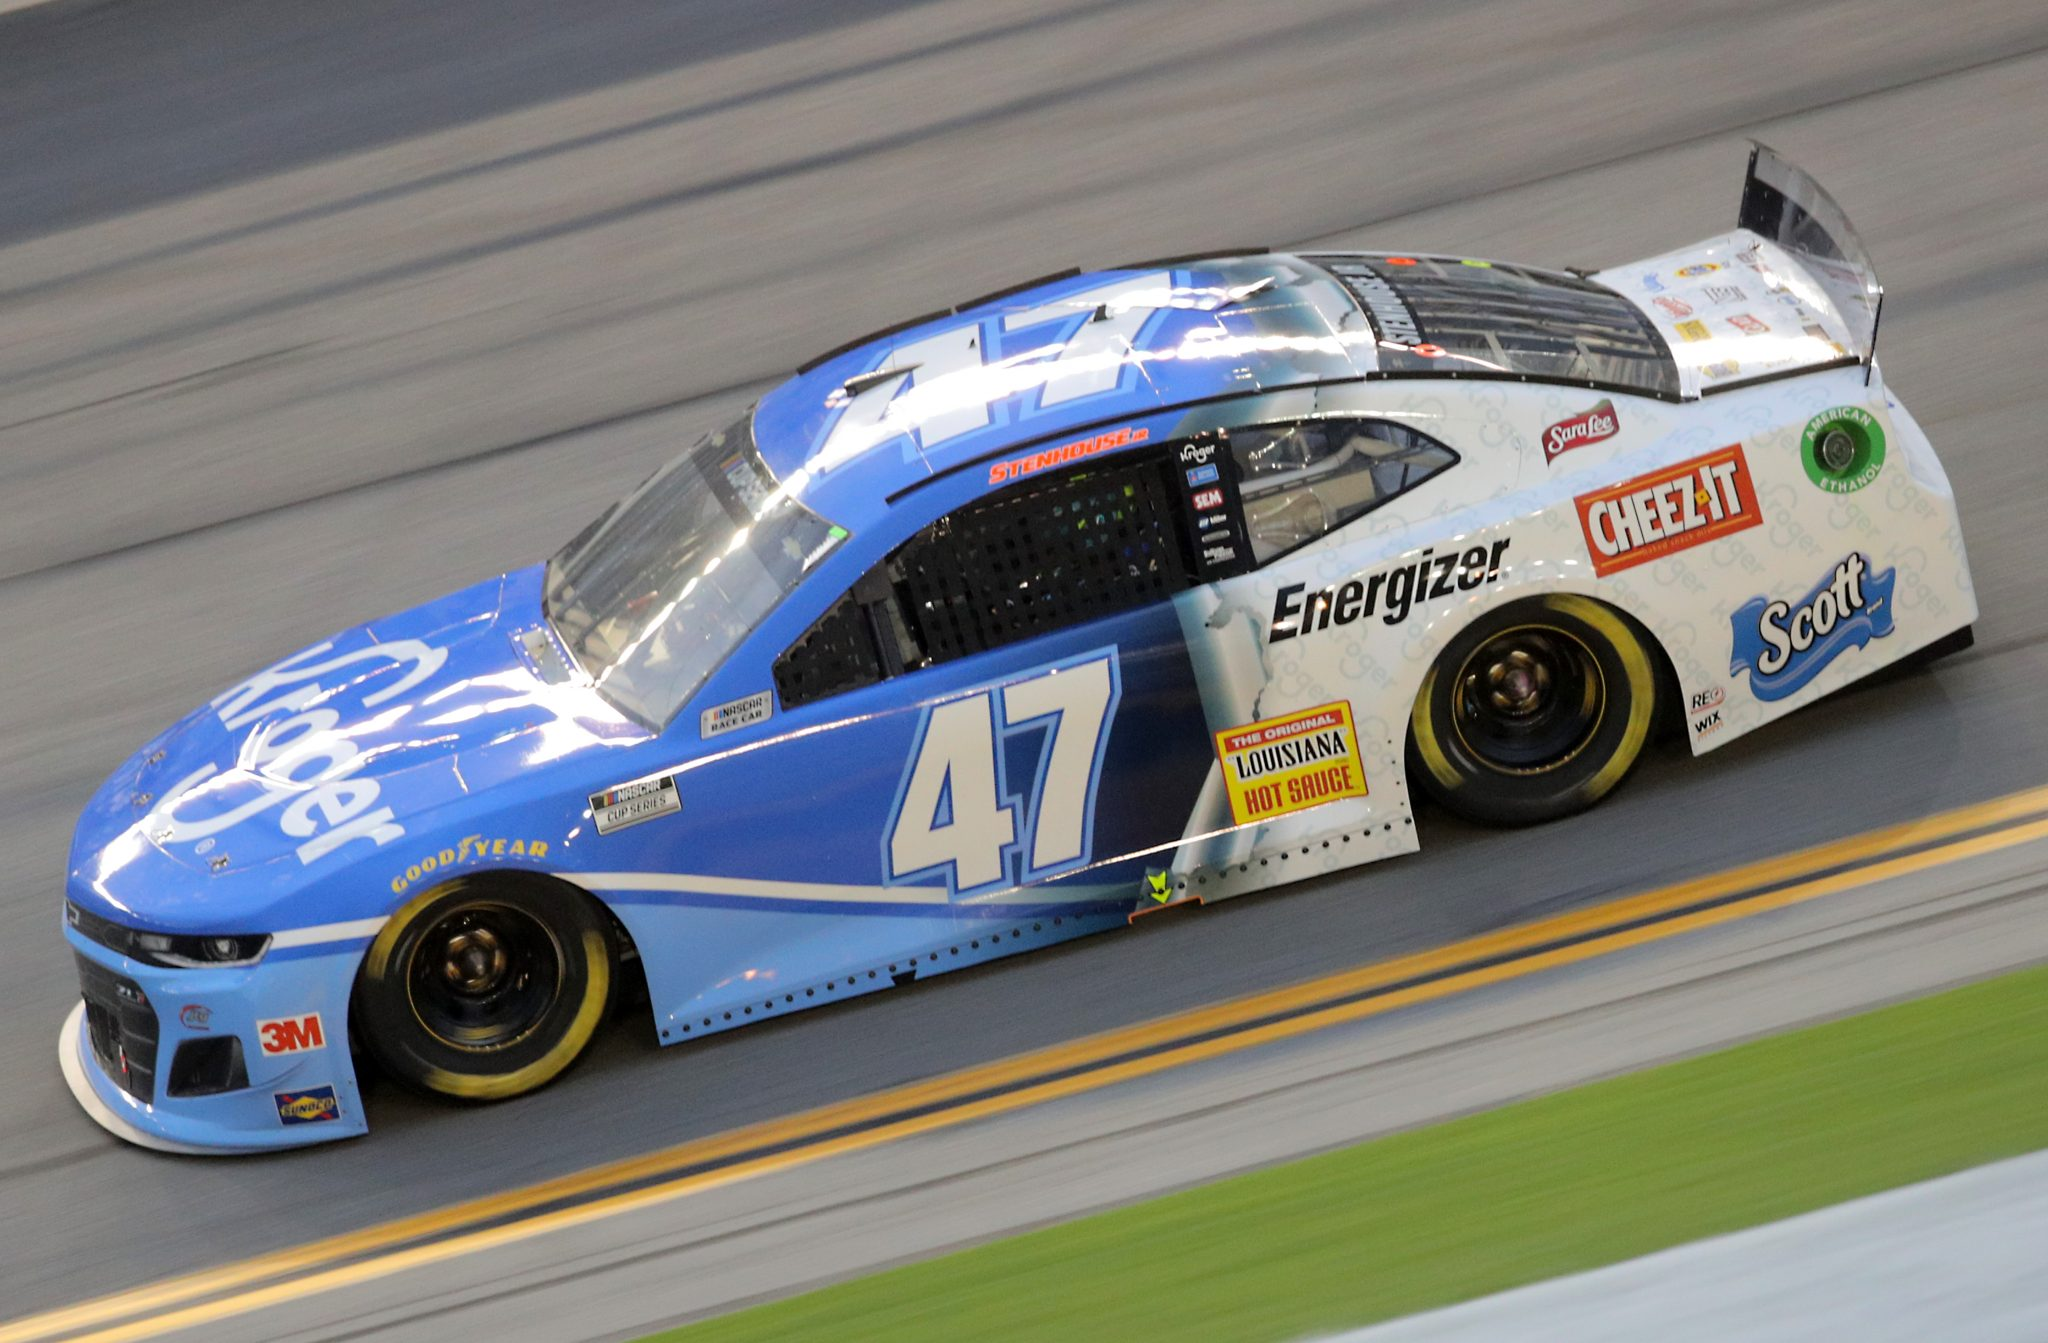 DAYTONA BEACH, FLORIDA - AUGUST 29: Ricky Stenhouse Jr., driver of the #47 Kroger Chevrolet, drives during the NASCAR Cup Series Coke Zero Sugar 400 at Daytona International Speedway on August 29, 2020 in Daytona Beach, Florida. (Photo by Chris Graythen/Getty Images) | Getty Images